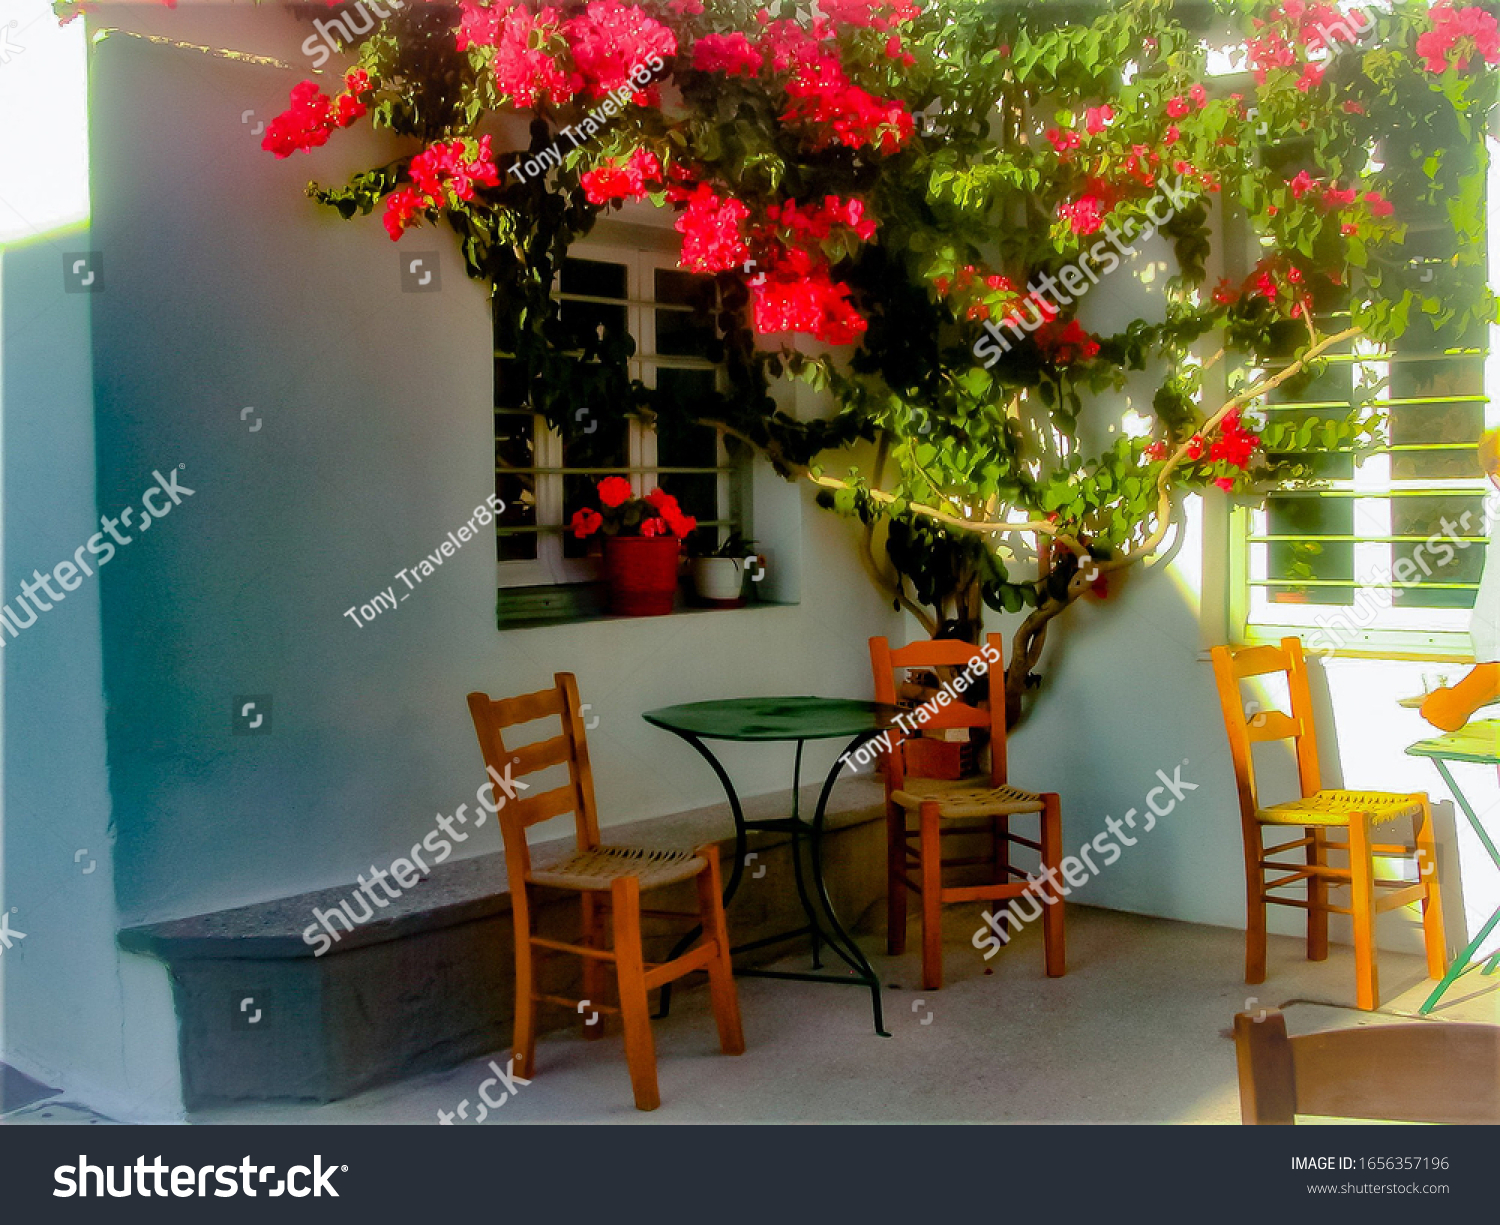 Picturesque and charming traditional greek cafe shop in Sifnos, Greece.